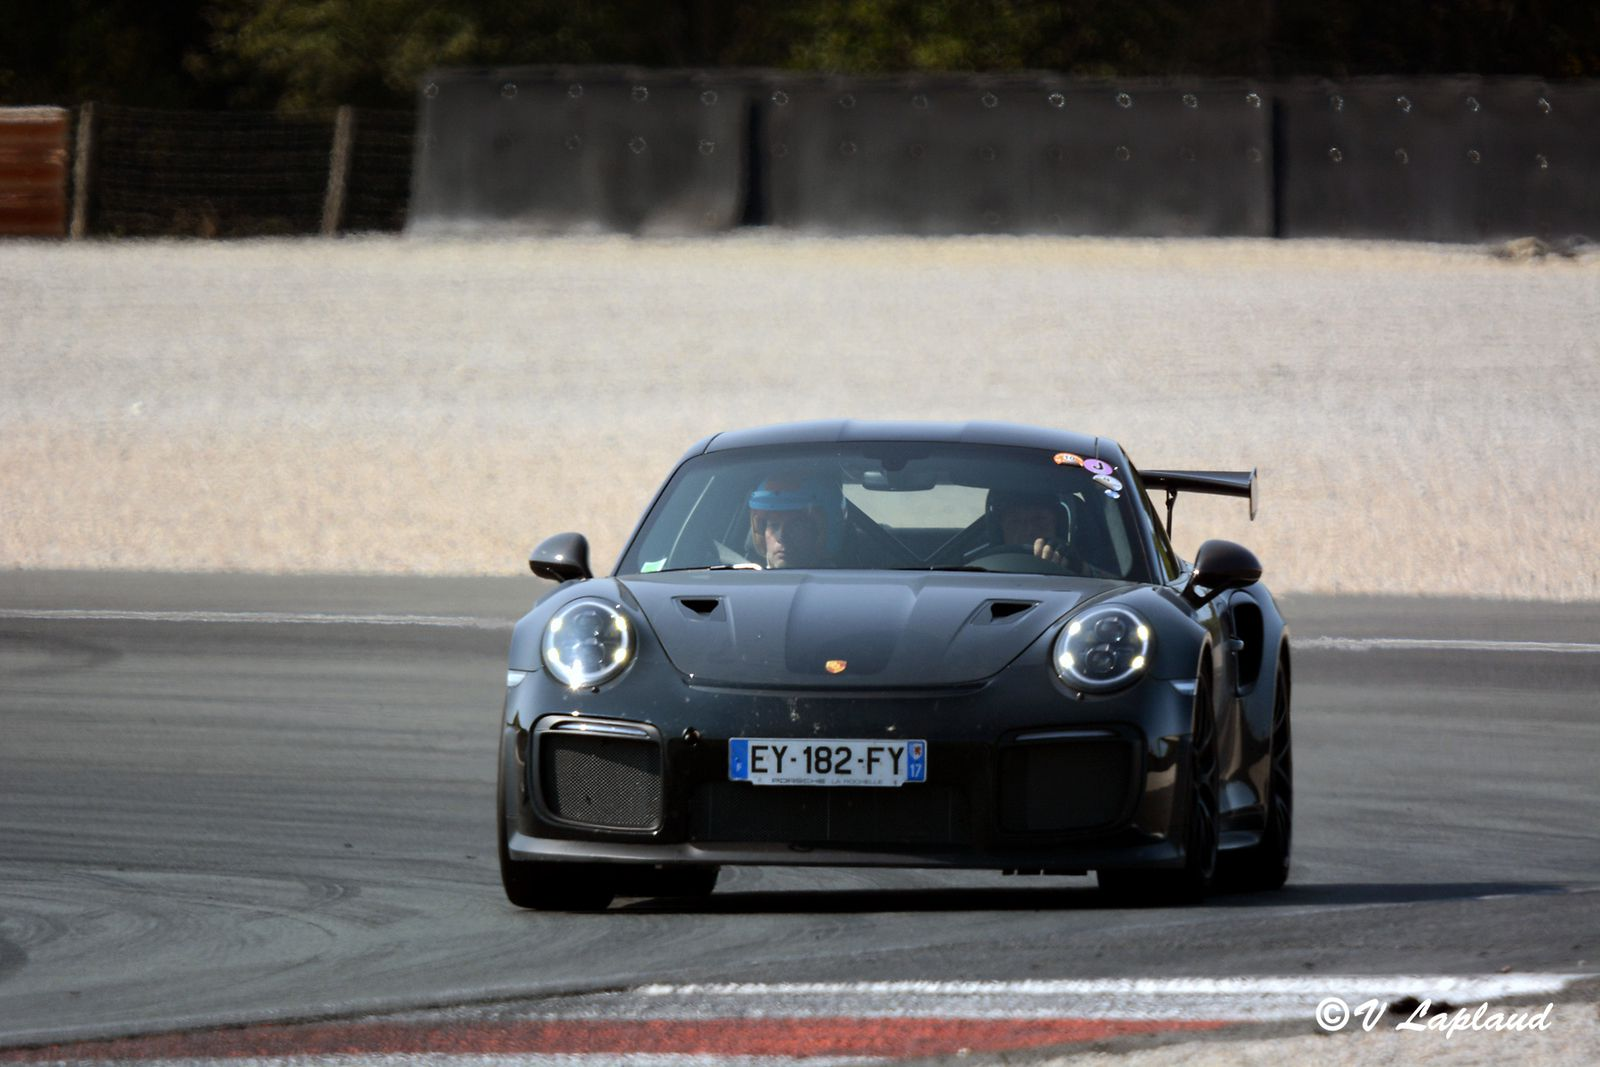 Porsche GT2 RS, Le Vigeant 2020, 26eme Sport et Collection.